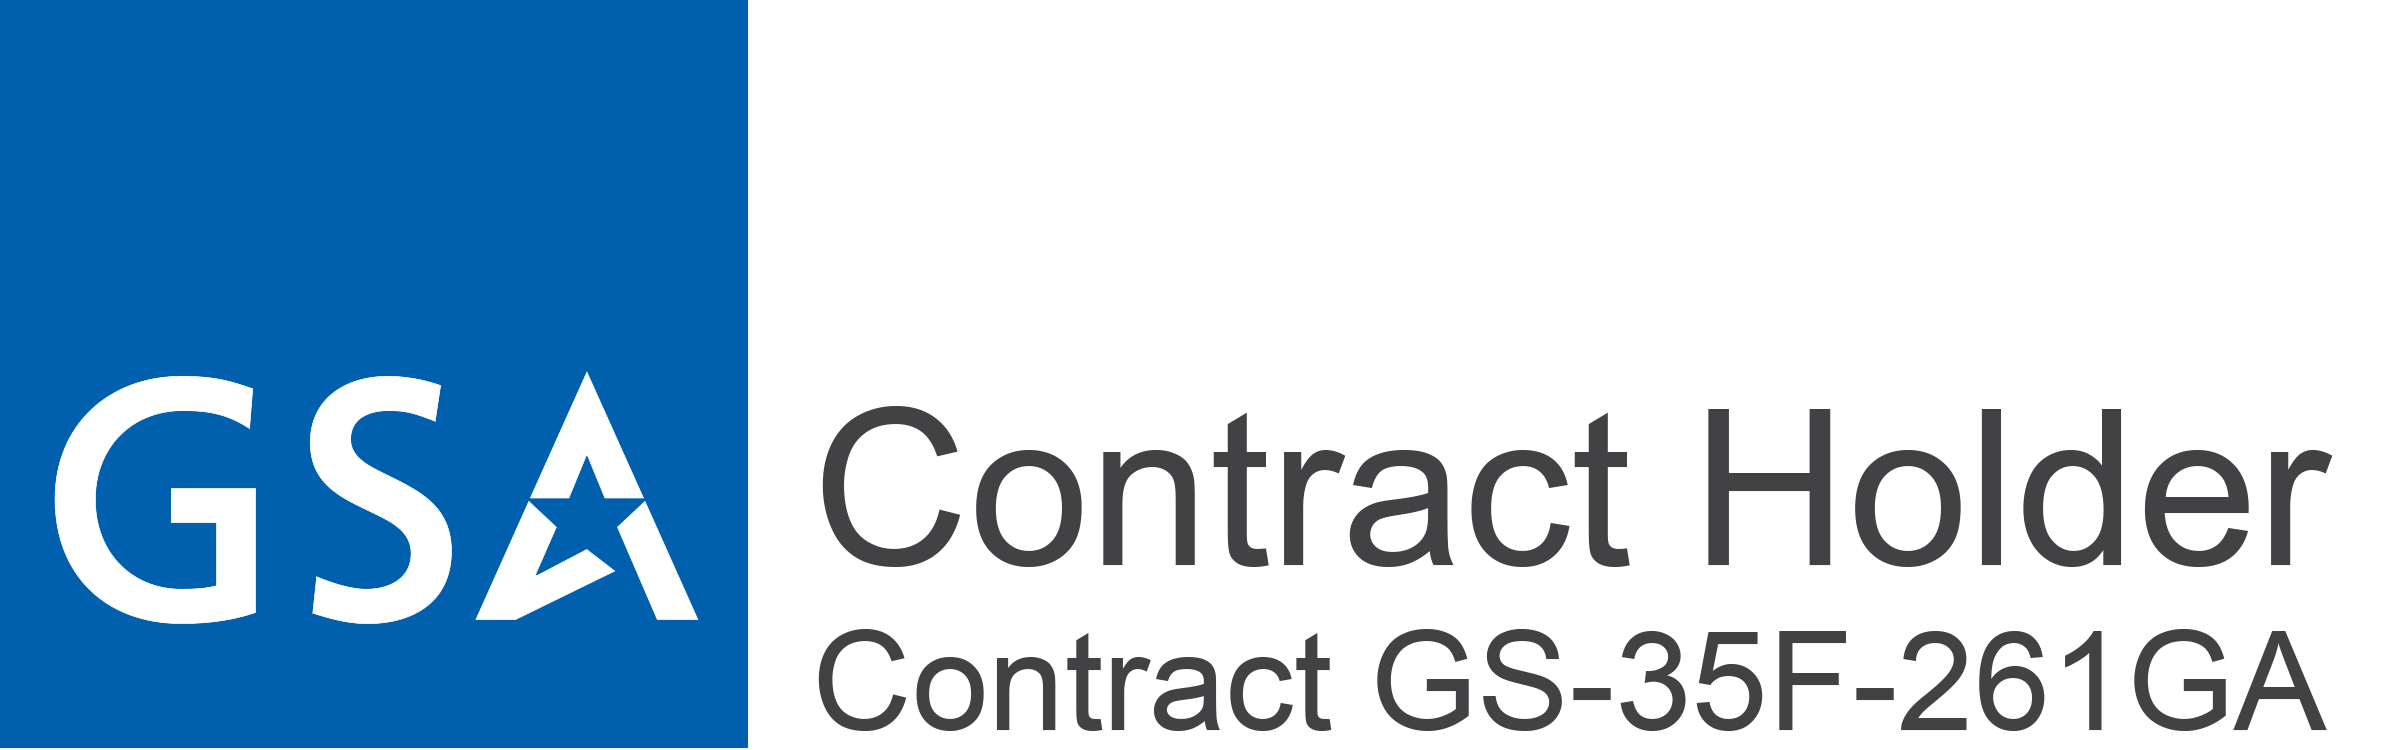 GSA Contract Holder, Contract GS-35F-261GA